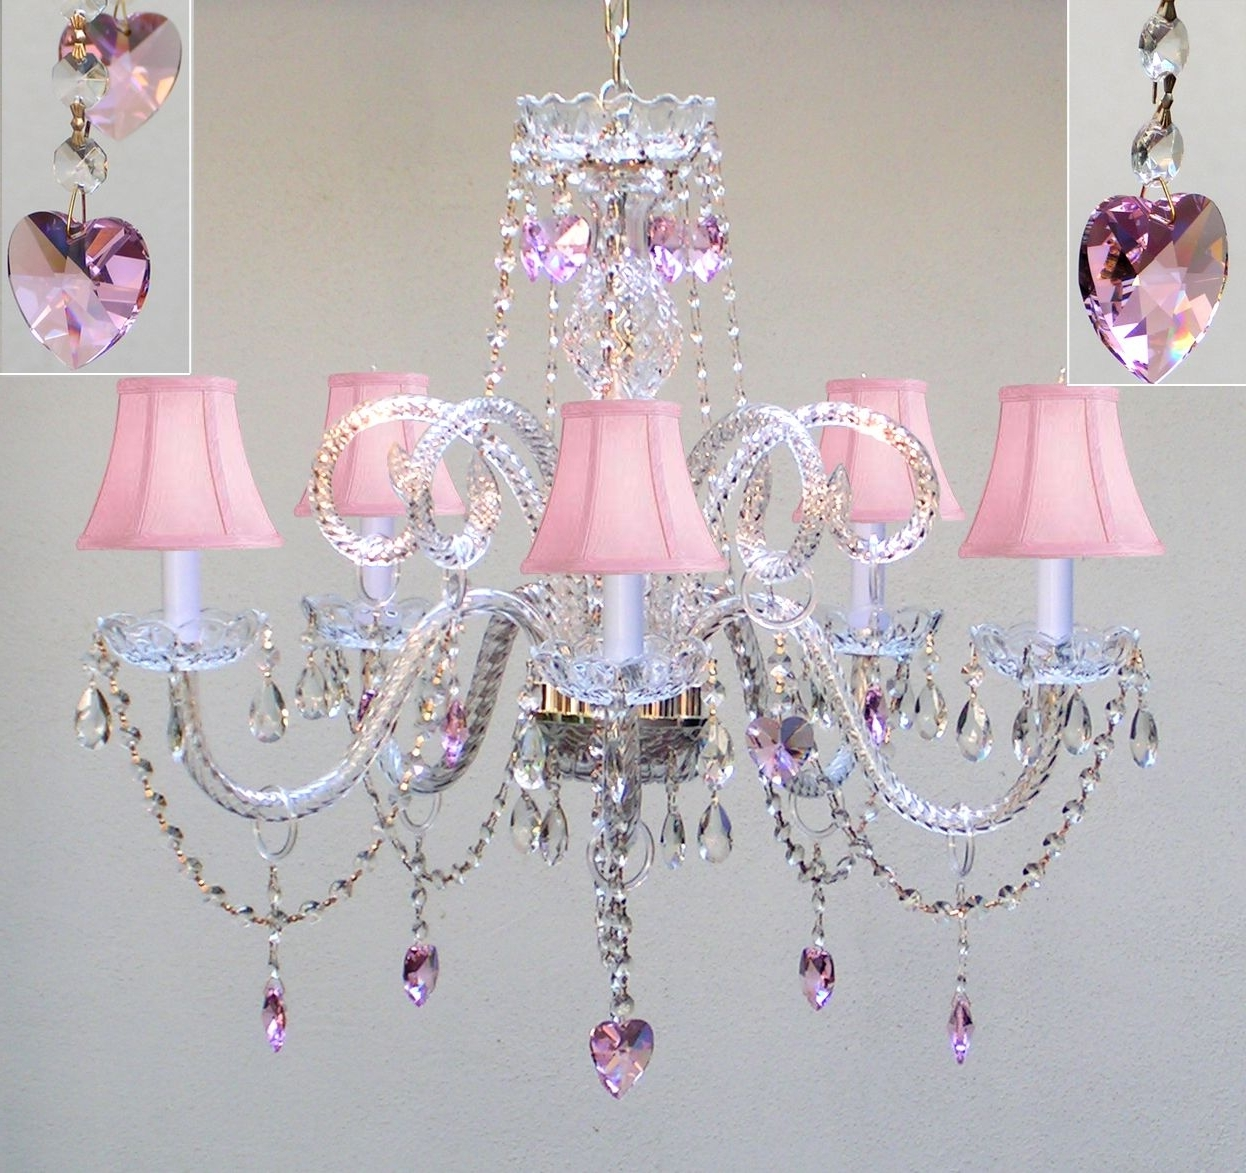 2019 Purple Crystal Chandelier Lights Inside For A Little Girls Room! A46 Sc/387/5/pinkhearts Chandeliers (View 15 of 20)